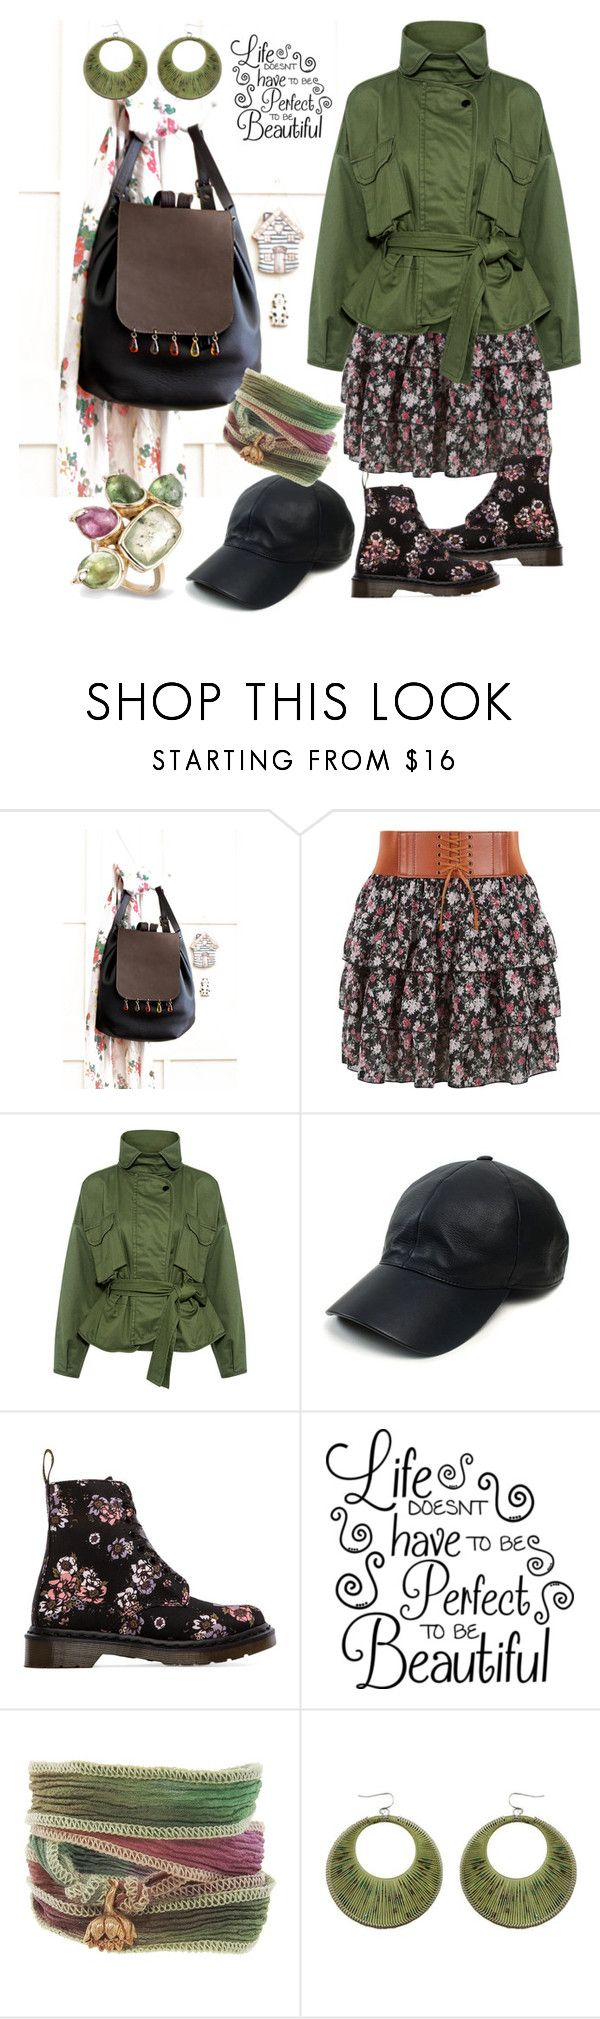 """Fall ideas"" by borsebyd ❤ liked on Polyvore featuring New Look, Marissa Webb, Vianel, Dr. Martens, Catherine Michiels, black, GREEN and backpack"